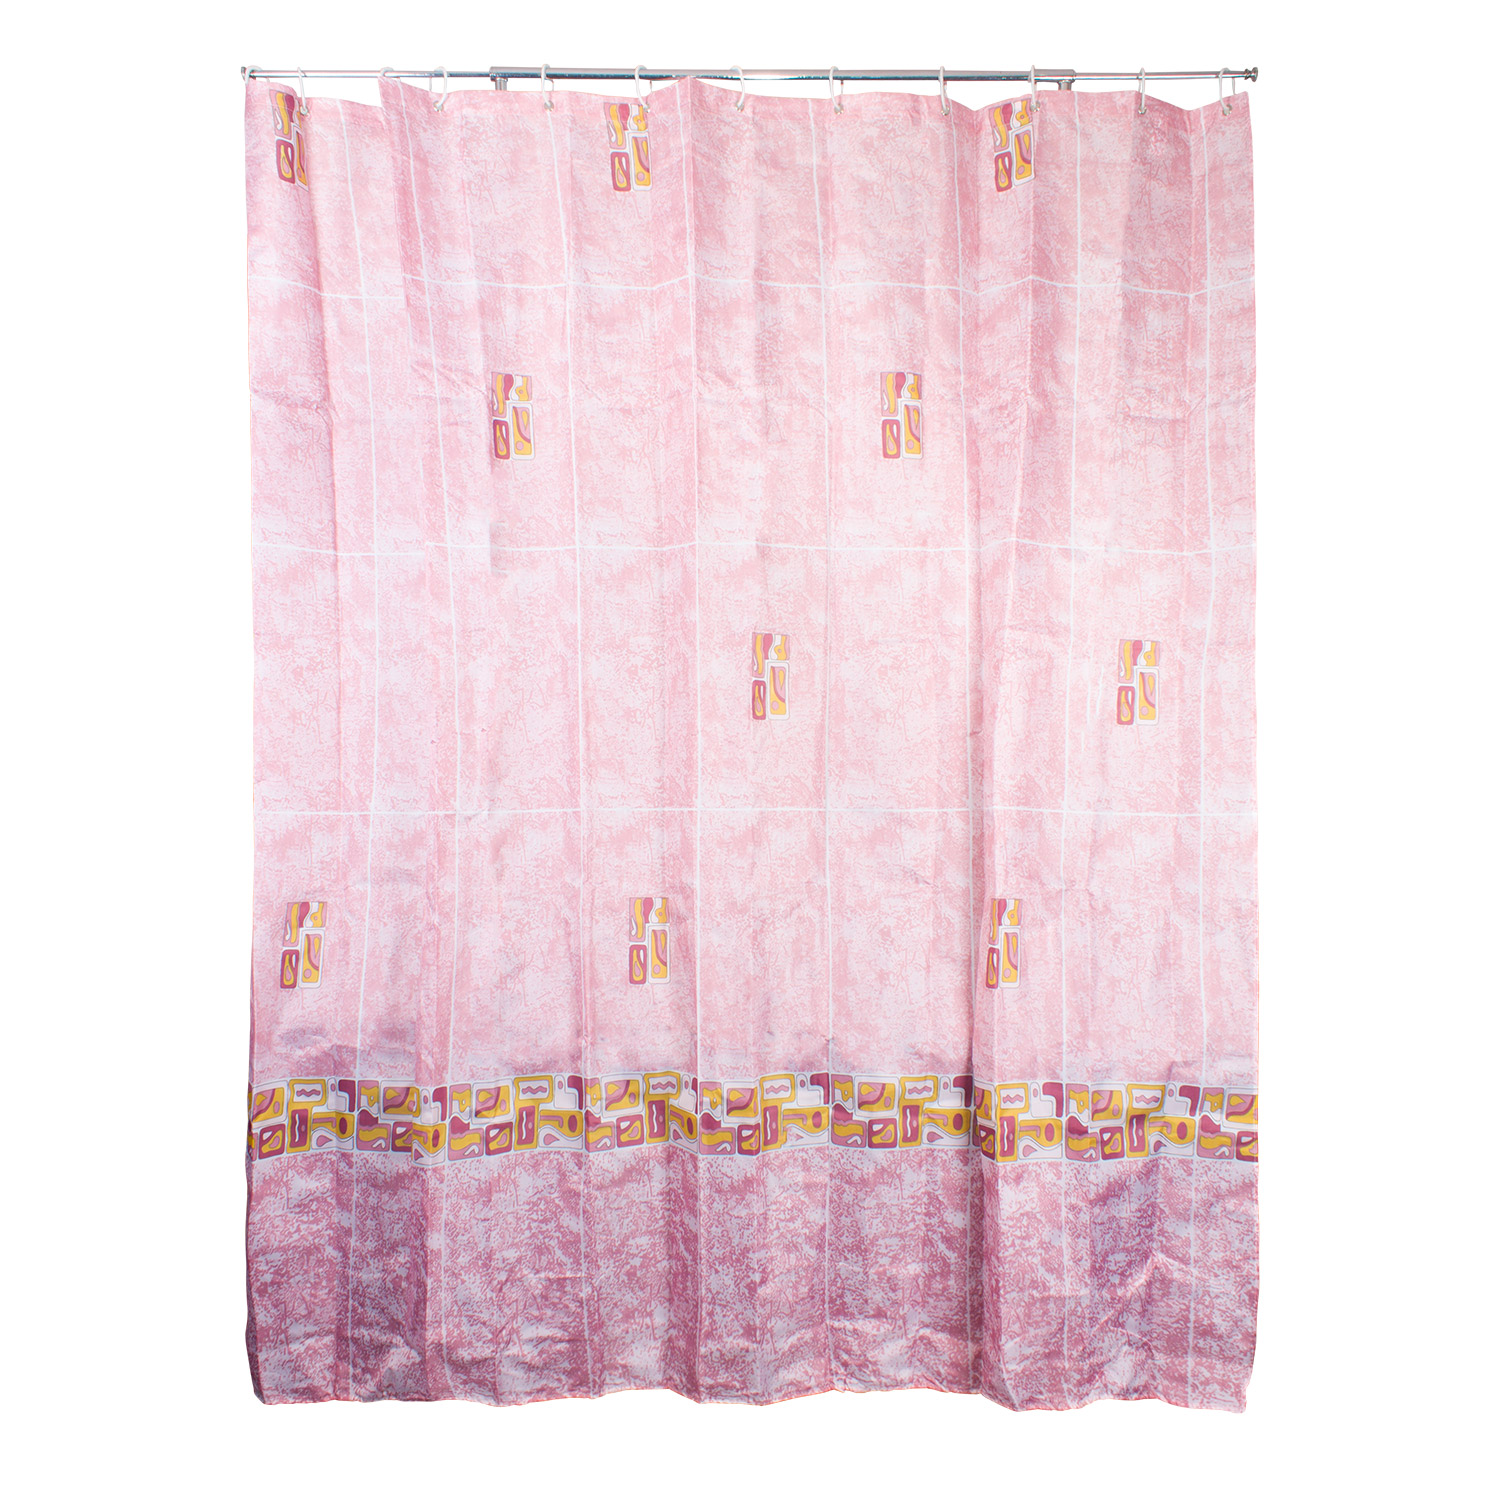 Westward Ho! Textile Shower Curtain